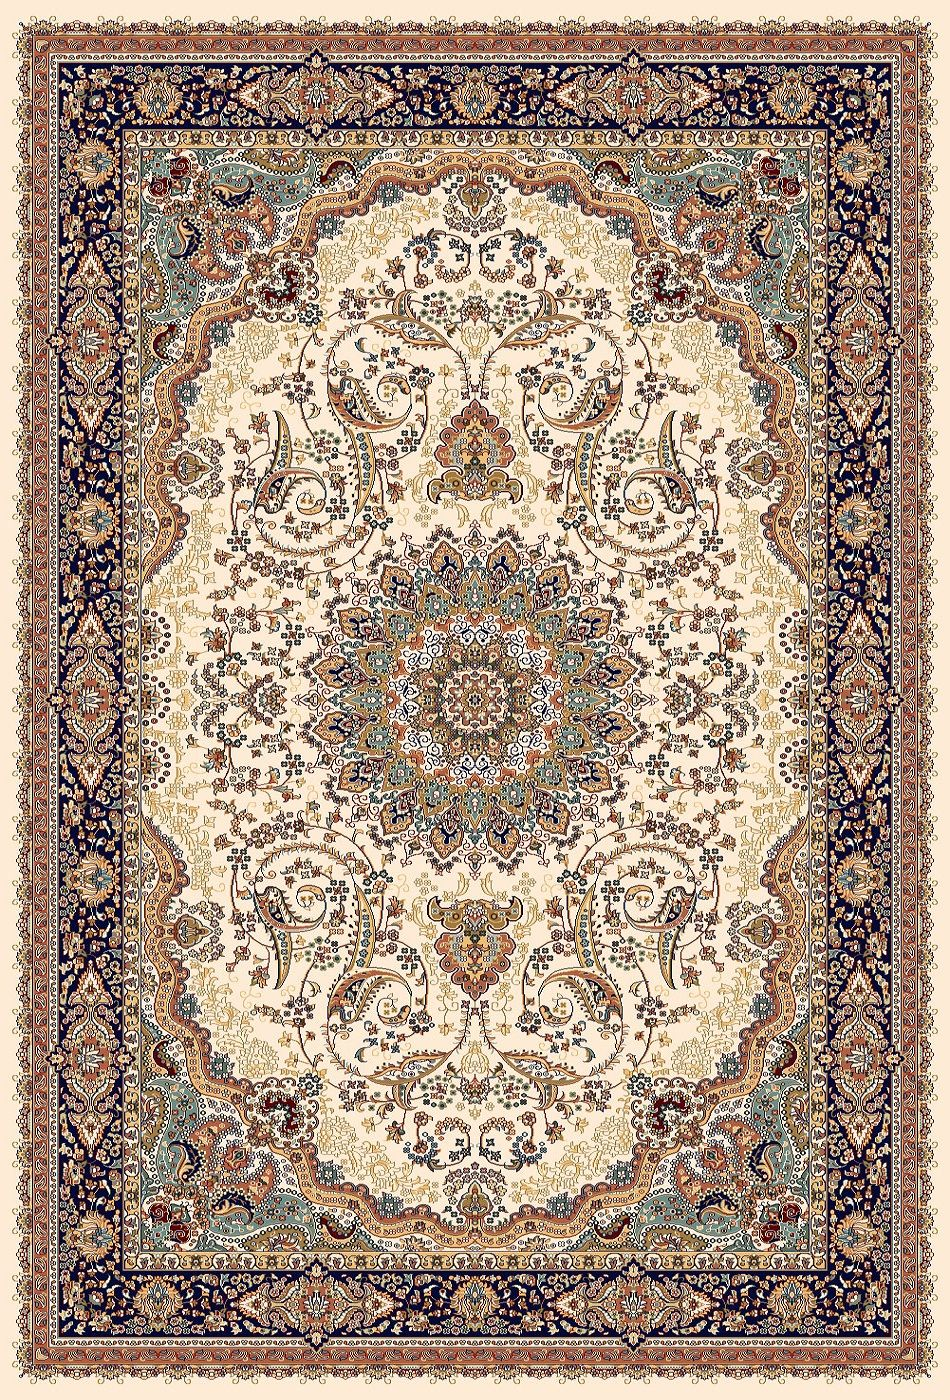 Teppich 250x350 Teppich 250x350 Wolle Wool Carpets Rugs On Carpet Rustic Rugs